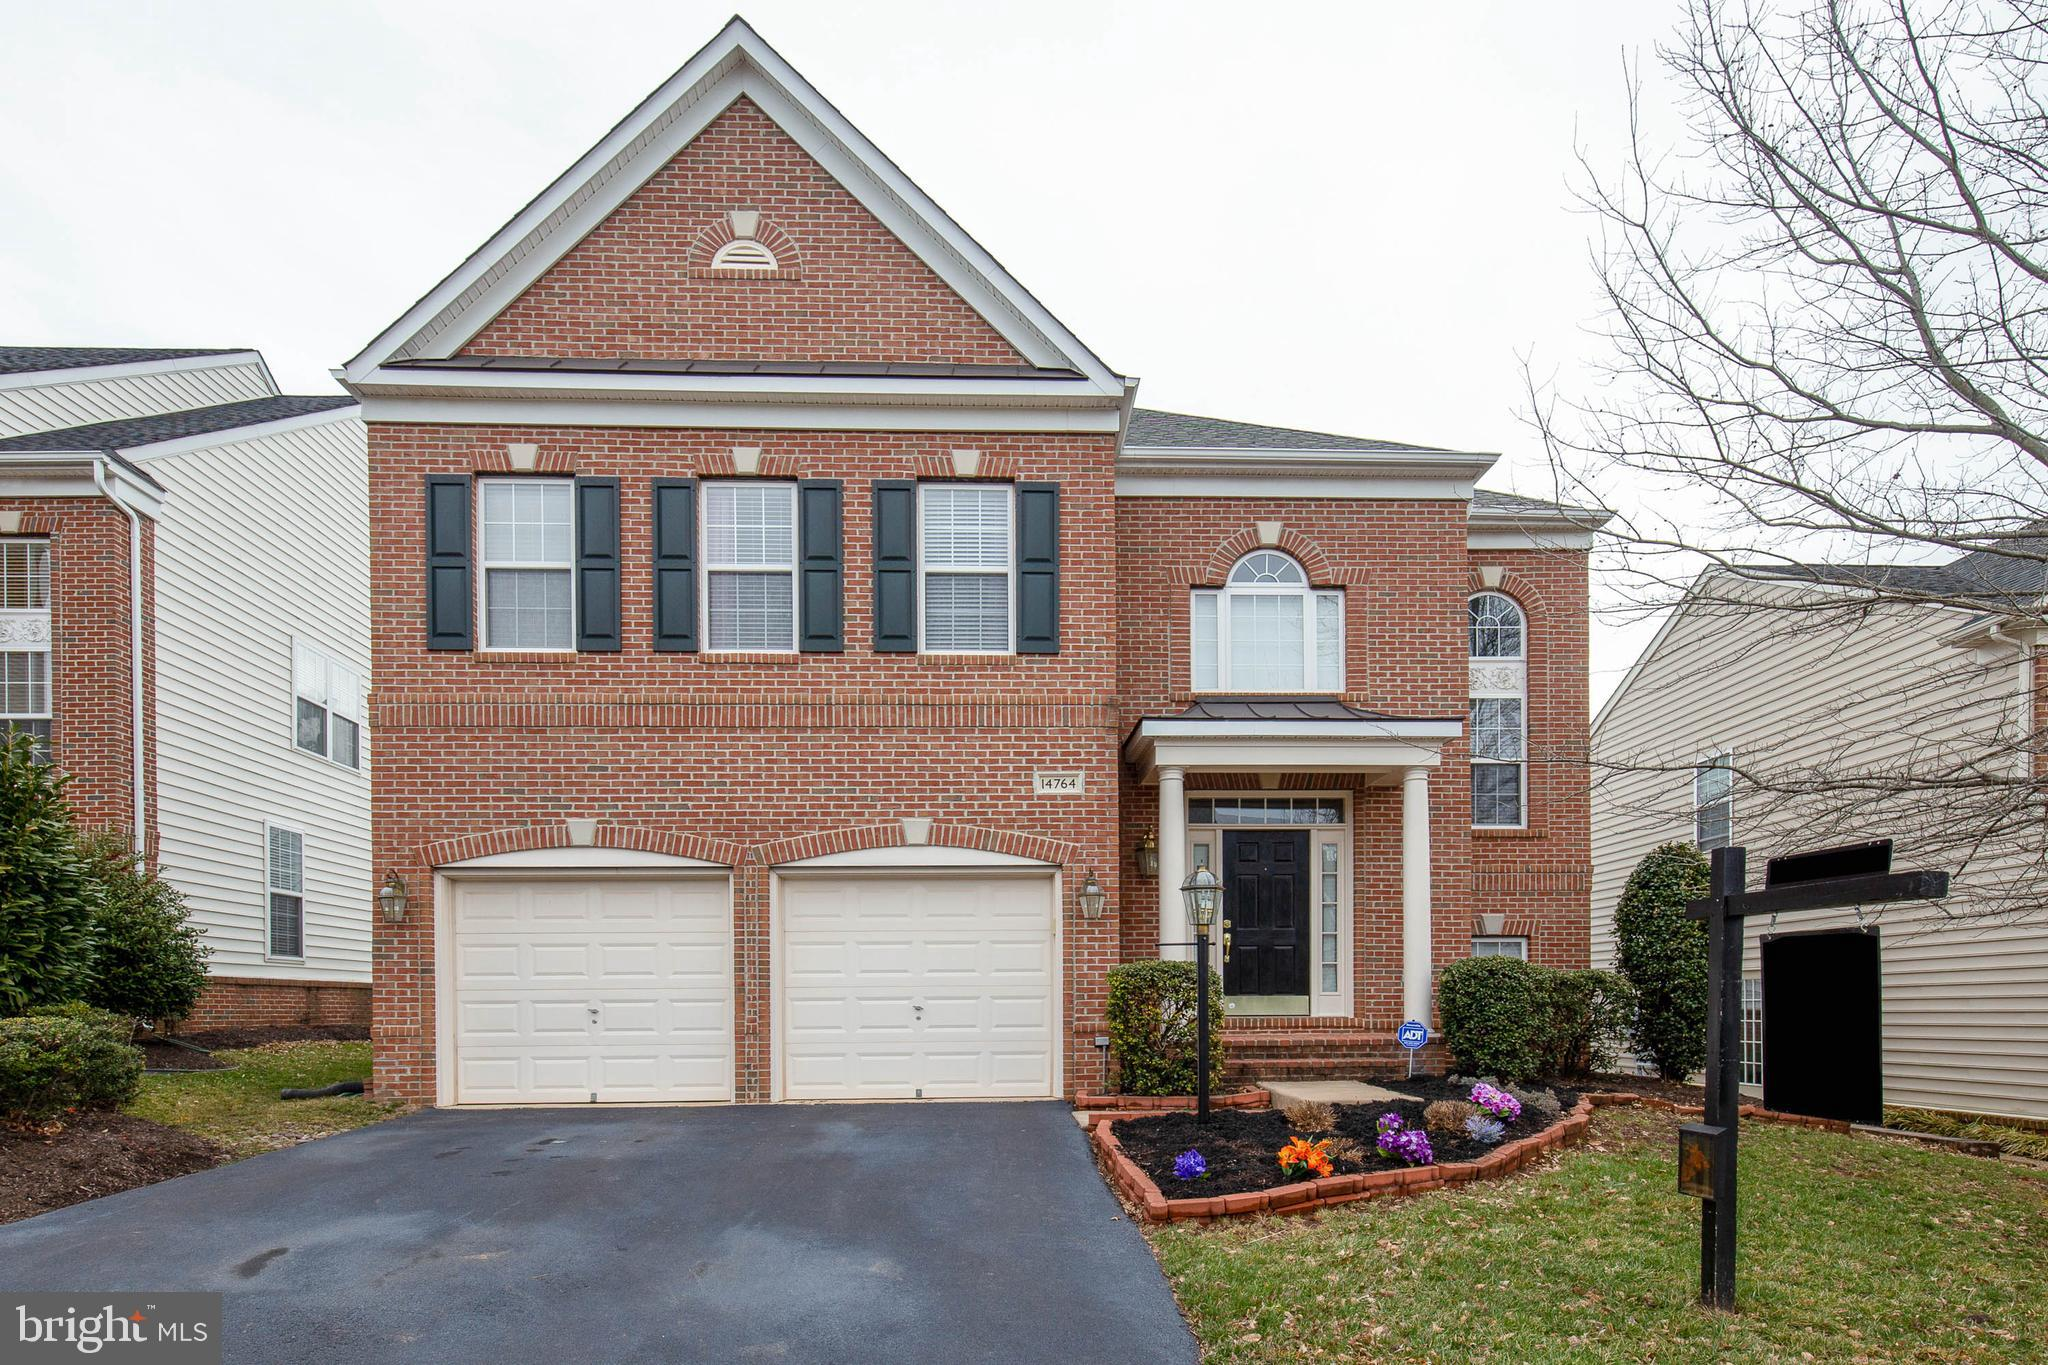 Stunning 4BD/3.5BA brick front colonial with over 4300 fin sq ft in Piedmont Mews!  Bright and airy